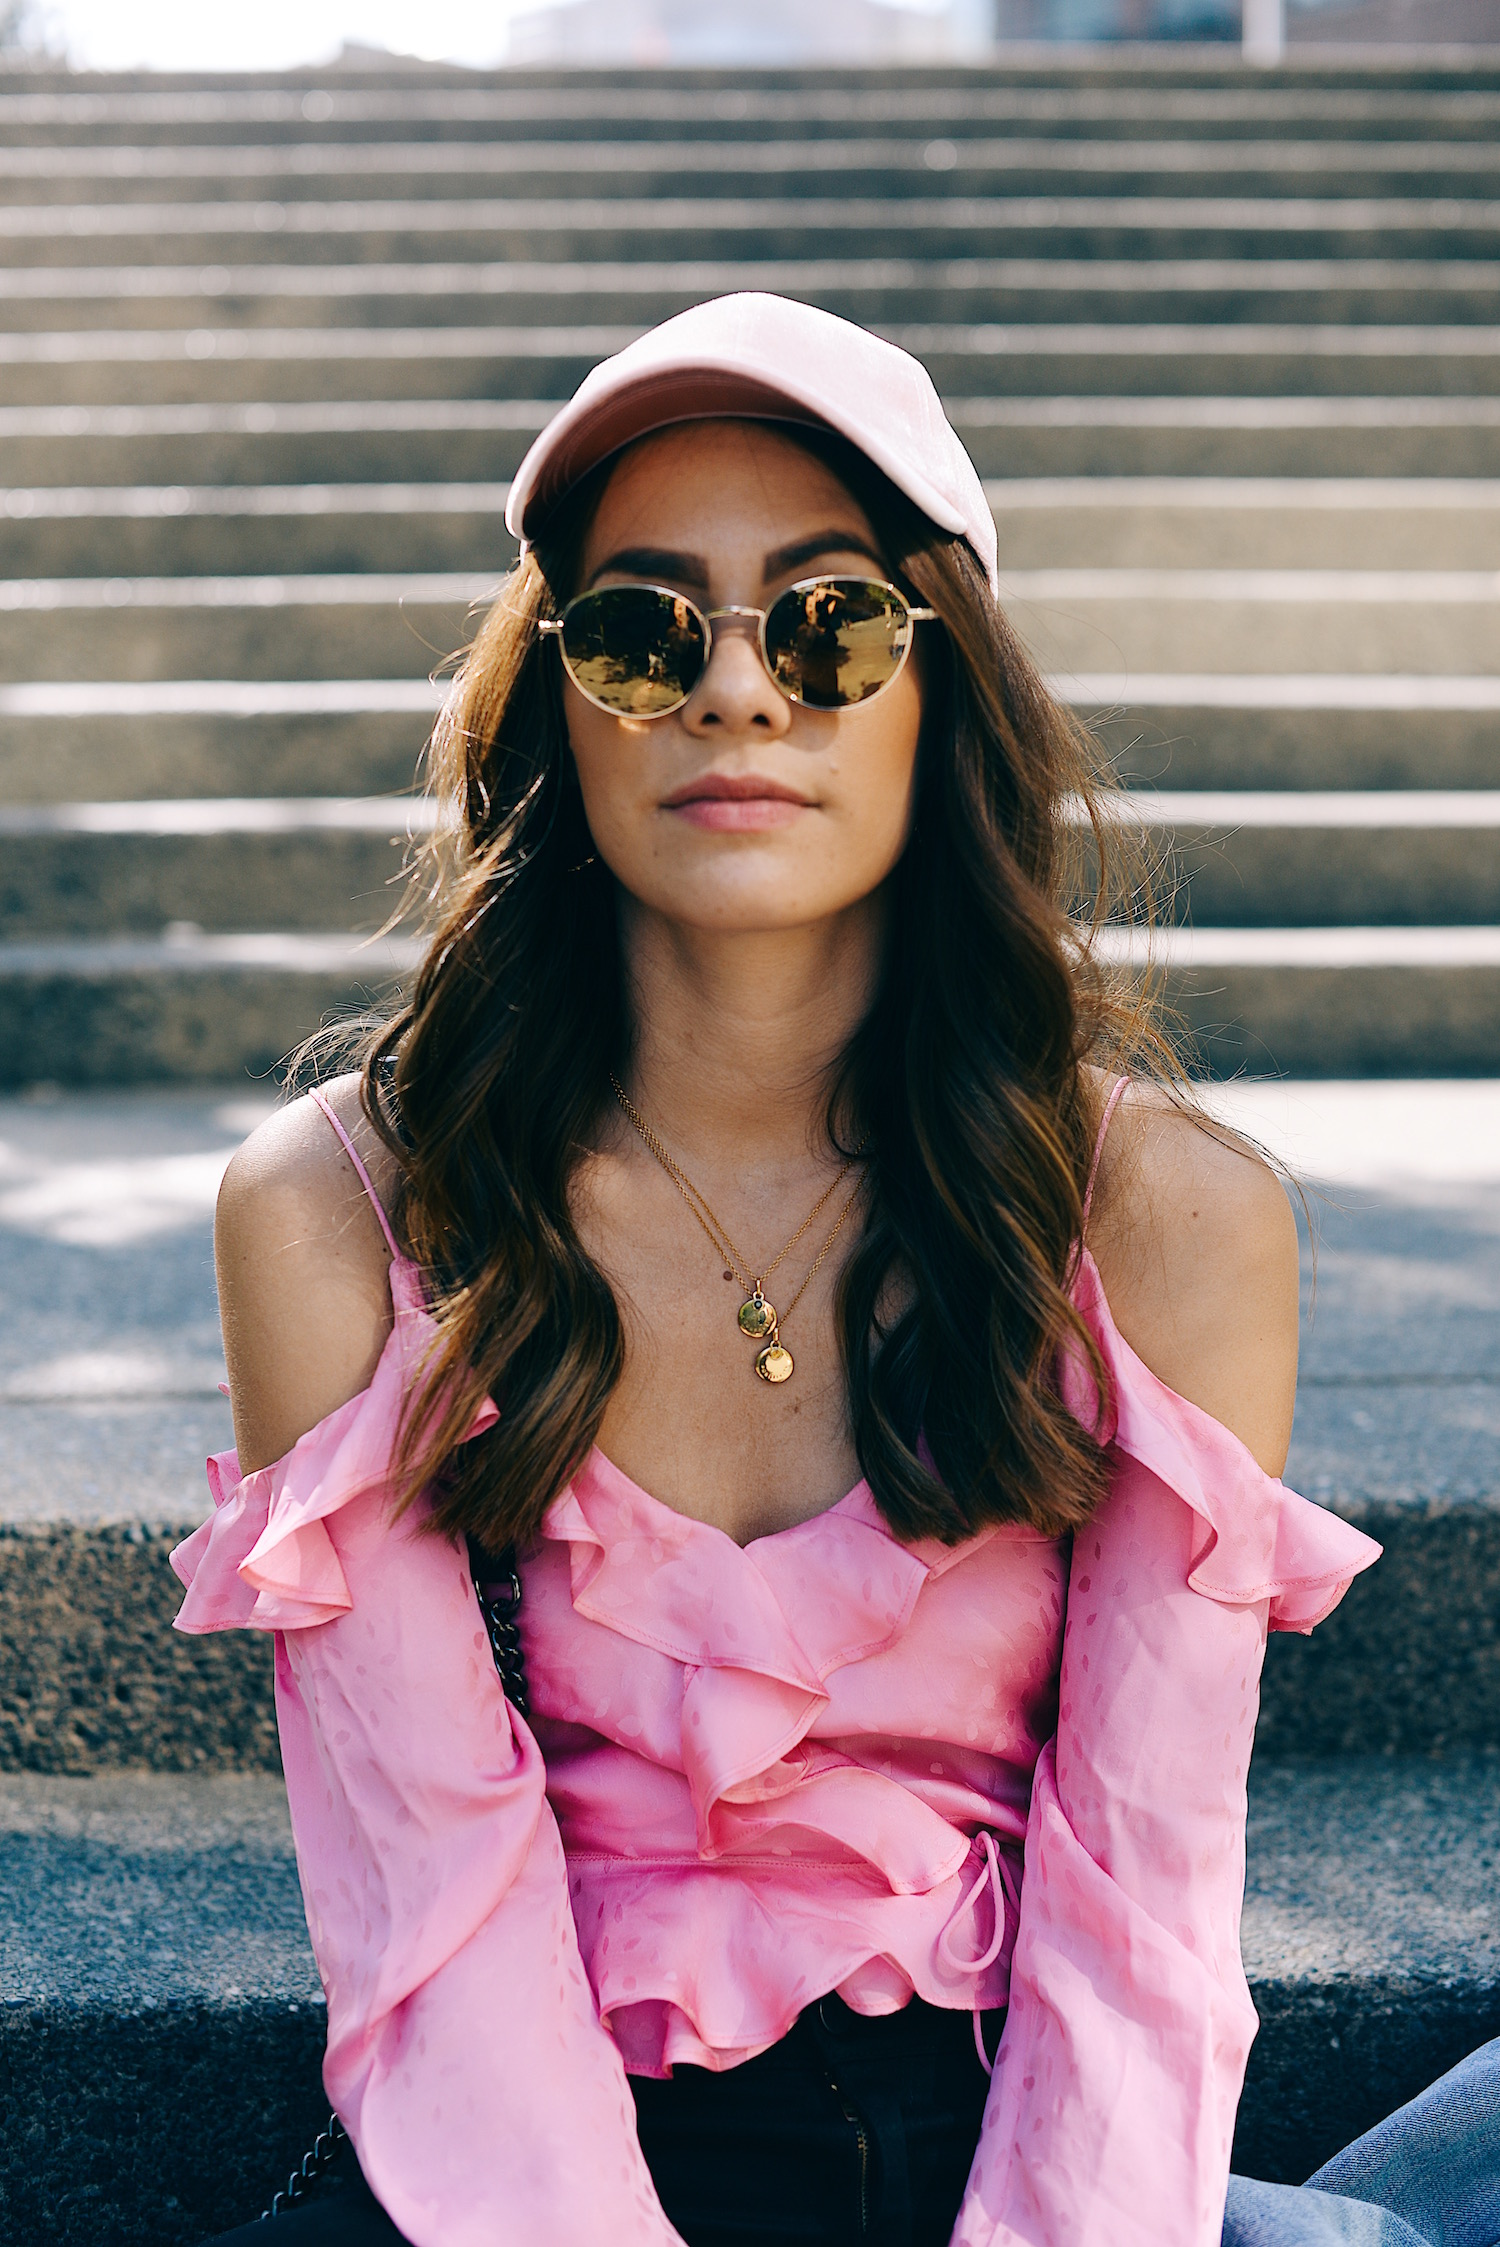 Pink shirt with Mejuri necklaces and pink cap